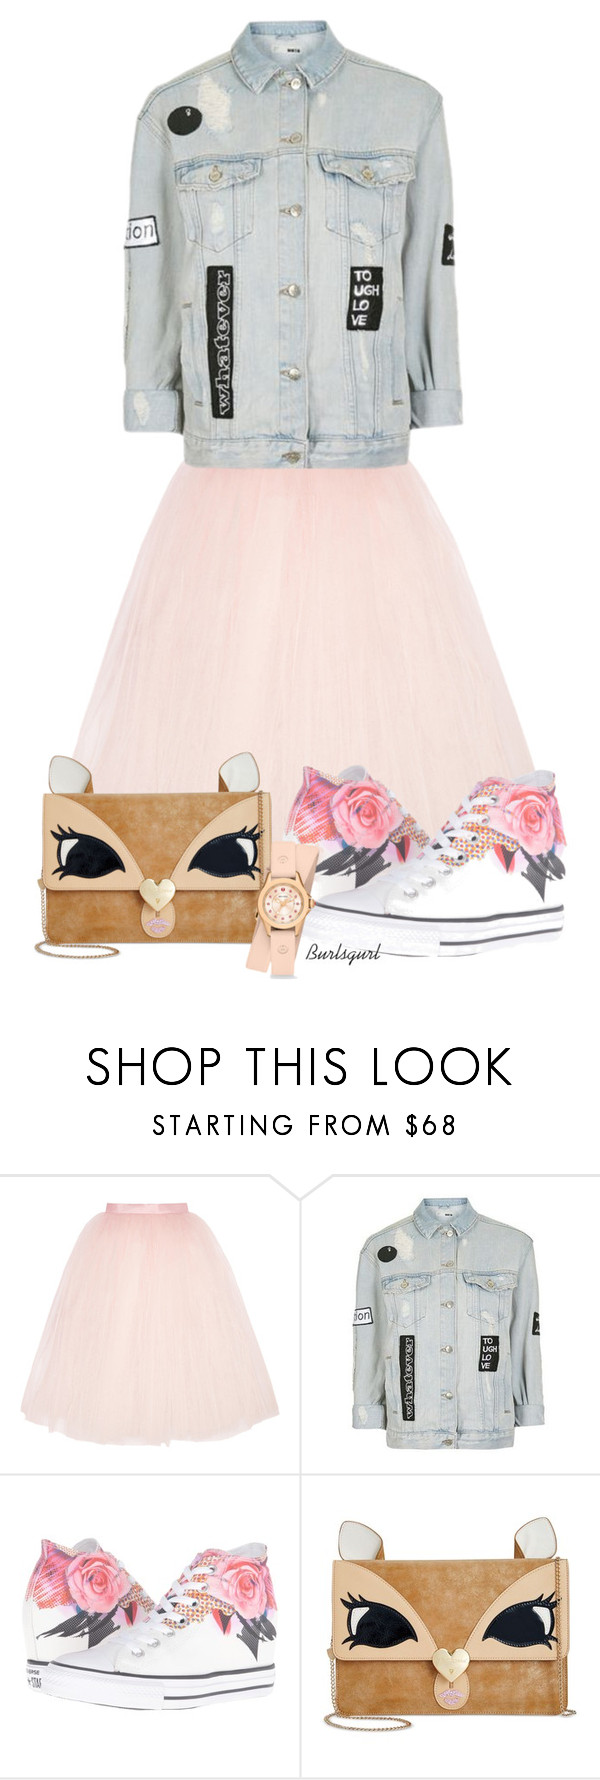 """""""TFP outfit mix"""" by burlsgurl ❤ liked on Polyvore featuring Ballet Beautiful, Topshop, Converse, Betsey Johnson and Michele"""